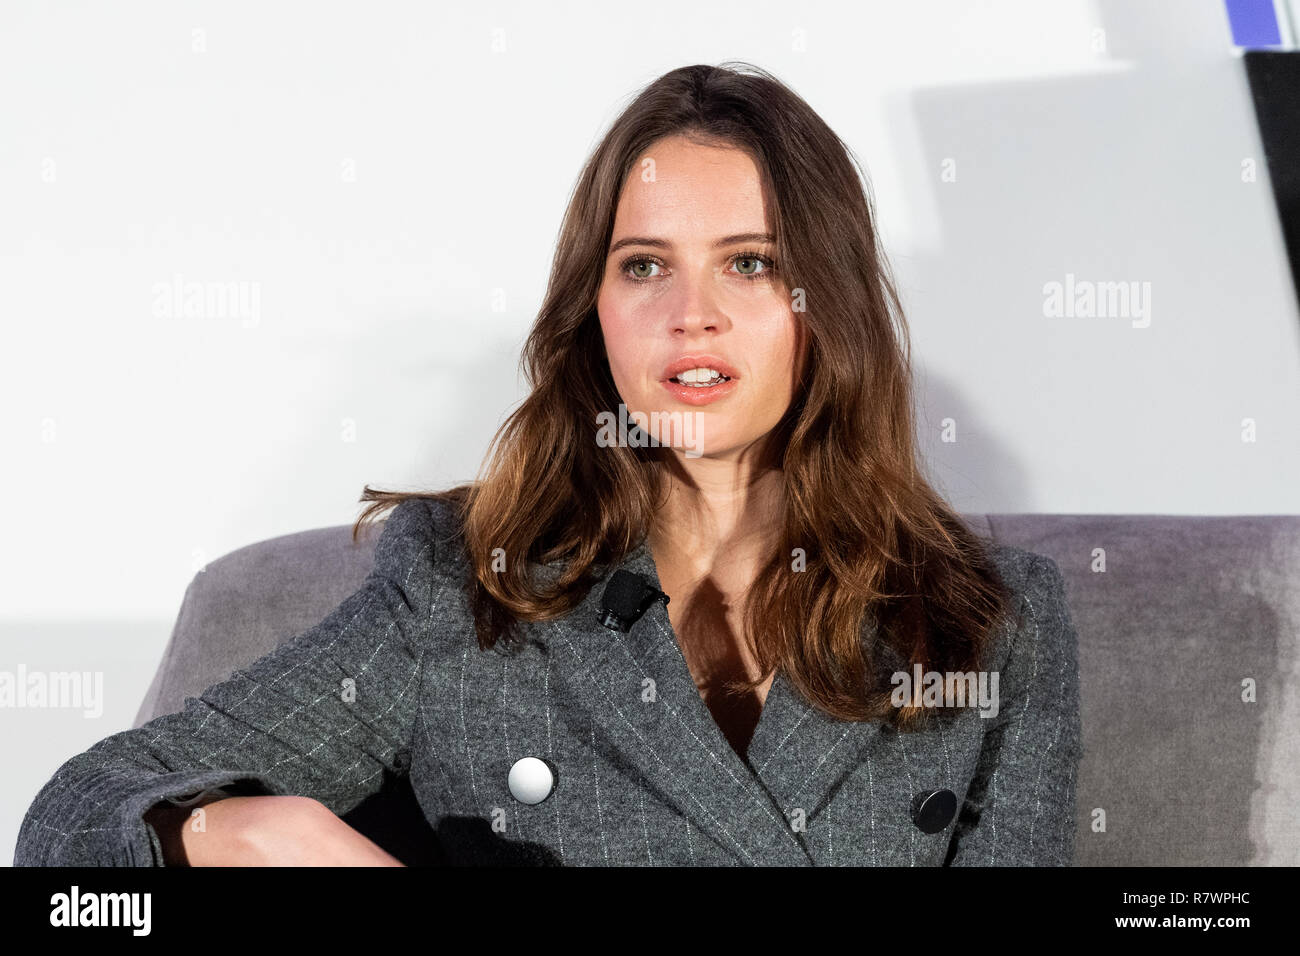 Washington, DC, USA. 11th Dec 2018. Felicity Jones, actress, at Politico's 6th Annual Women Rule Summit in Washington, DC on December 11, 2018. Credit: Michael Brochstein/Alamy Live News Stock Photo